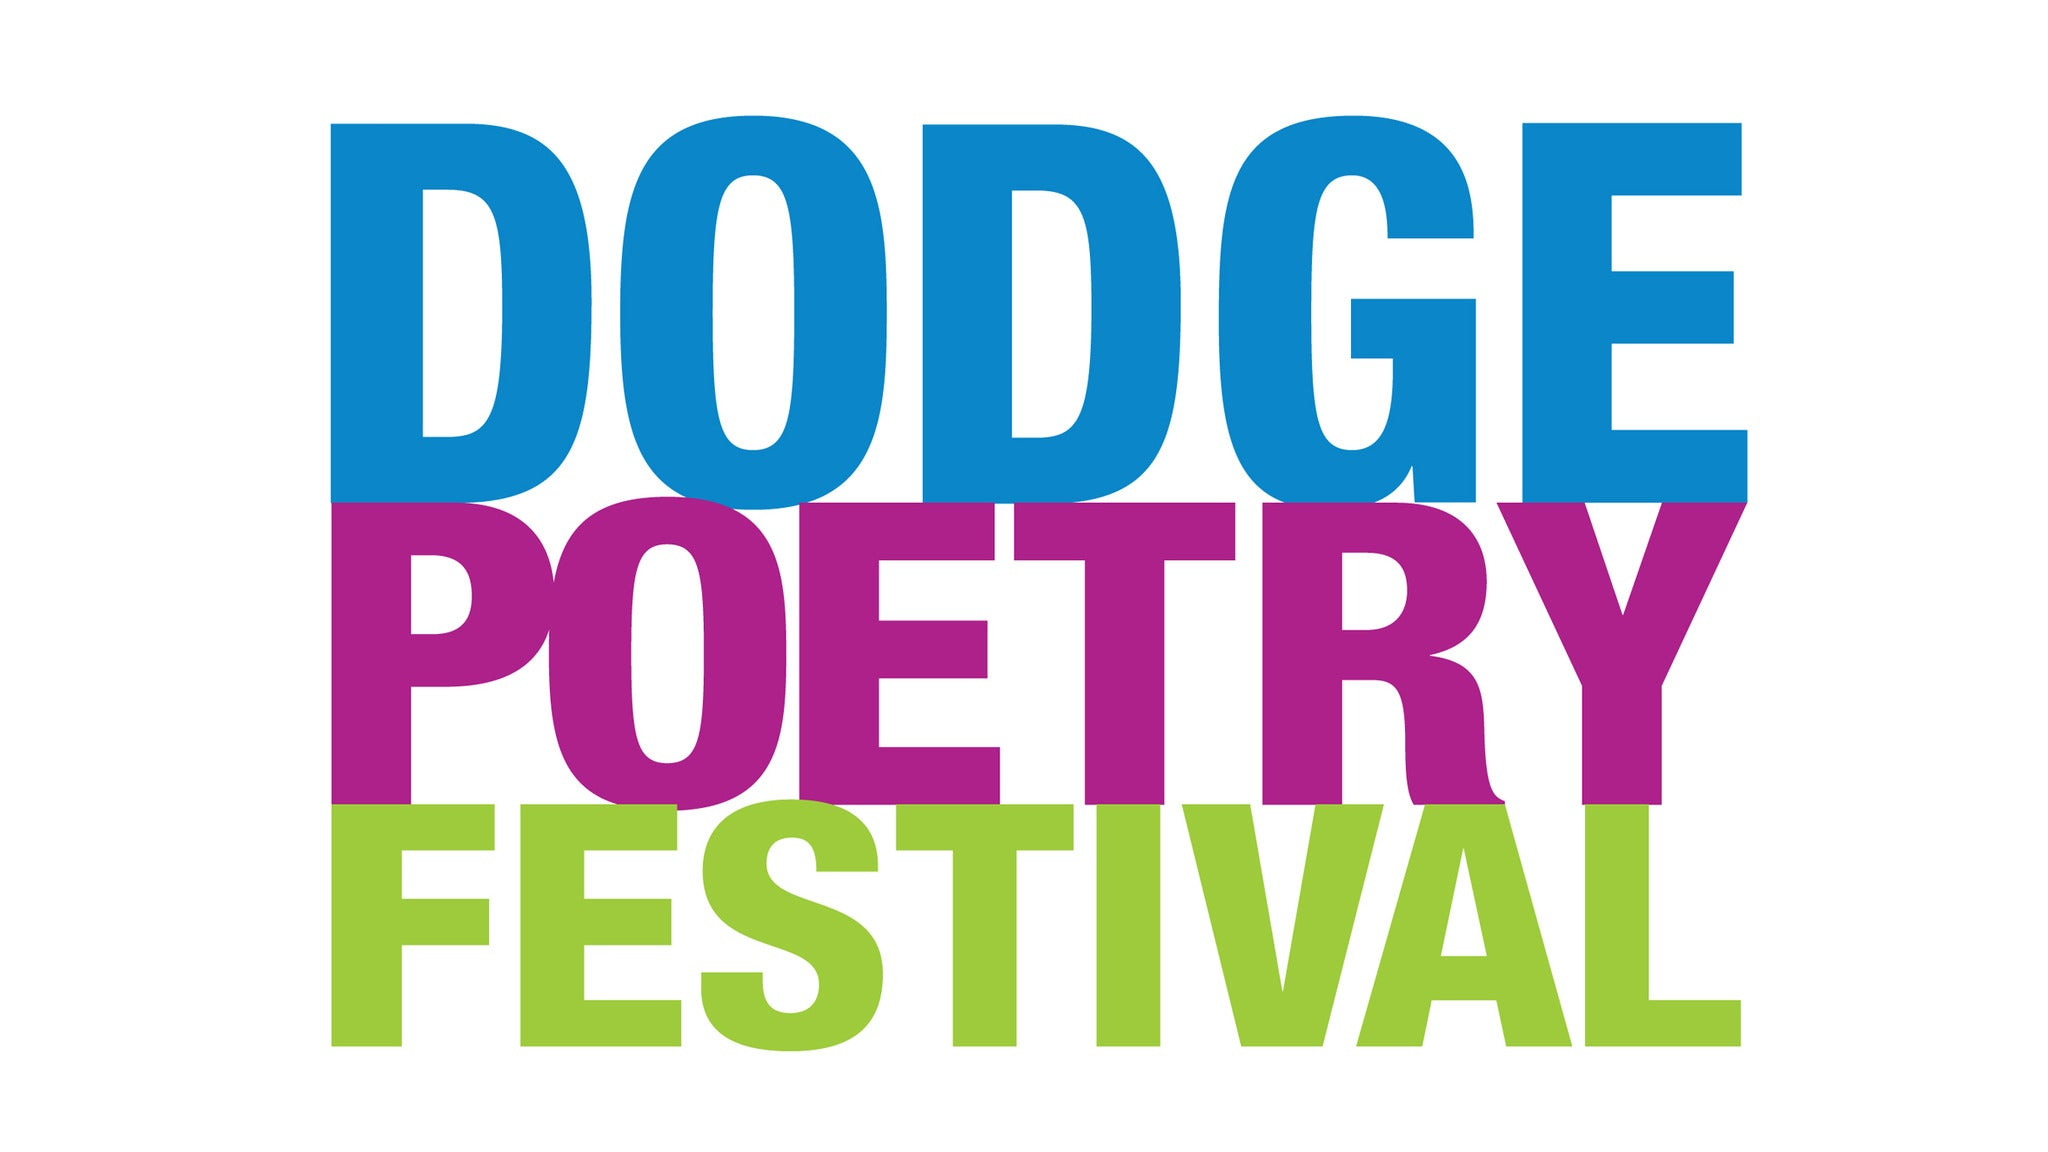 Geraldine R. Dodge Poetry Festival - Single Day Admission Sat, Oct 24